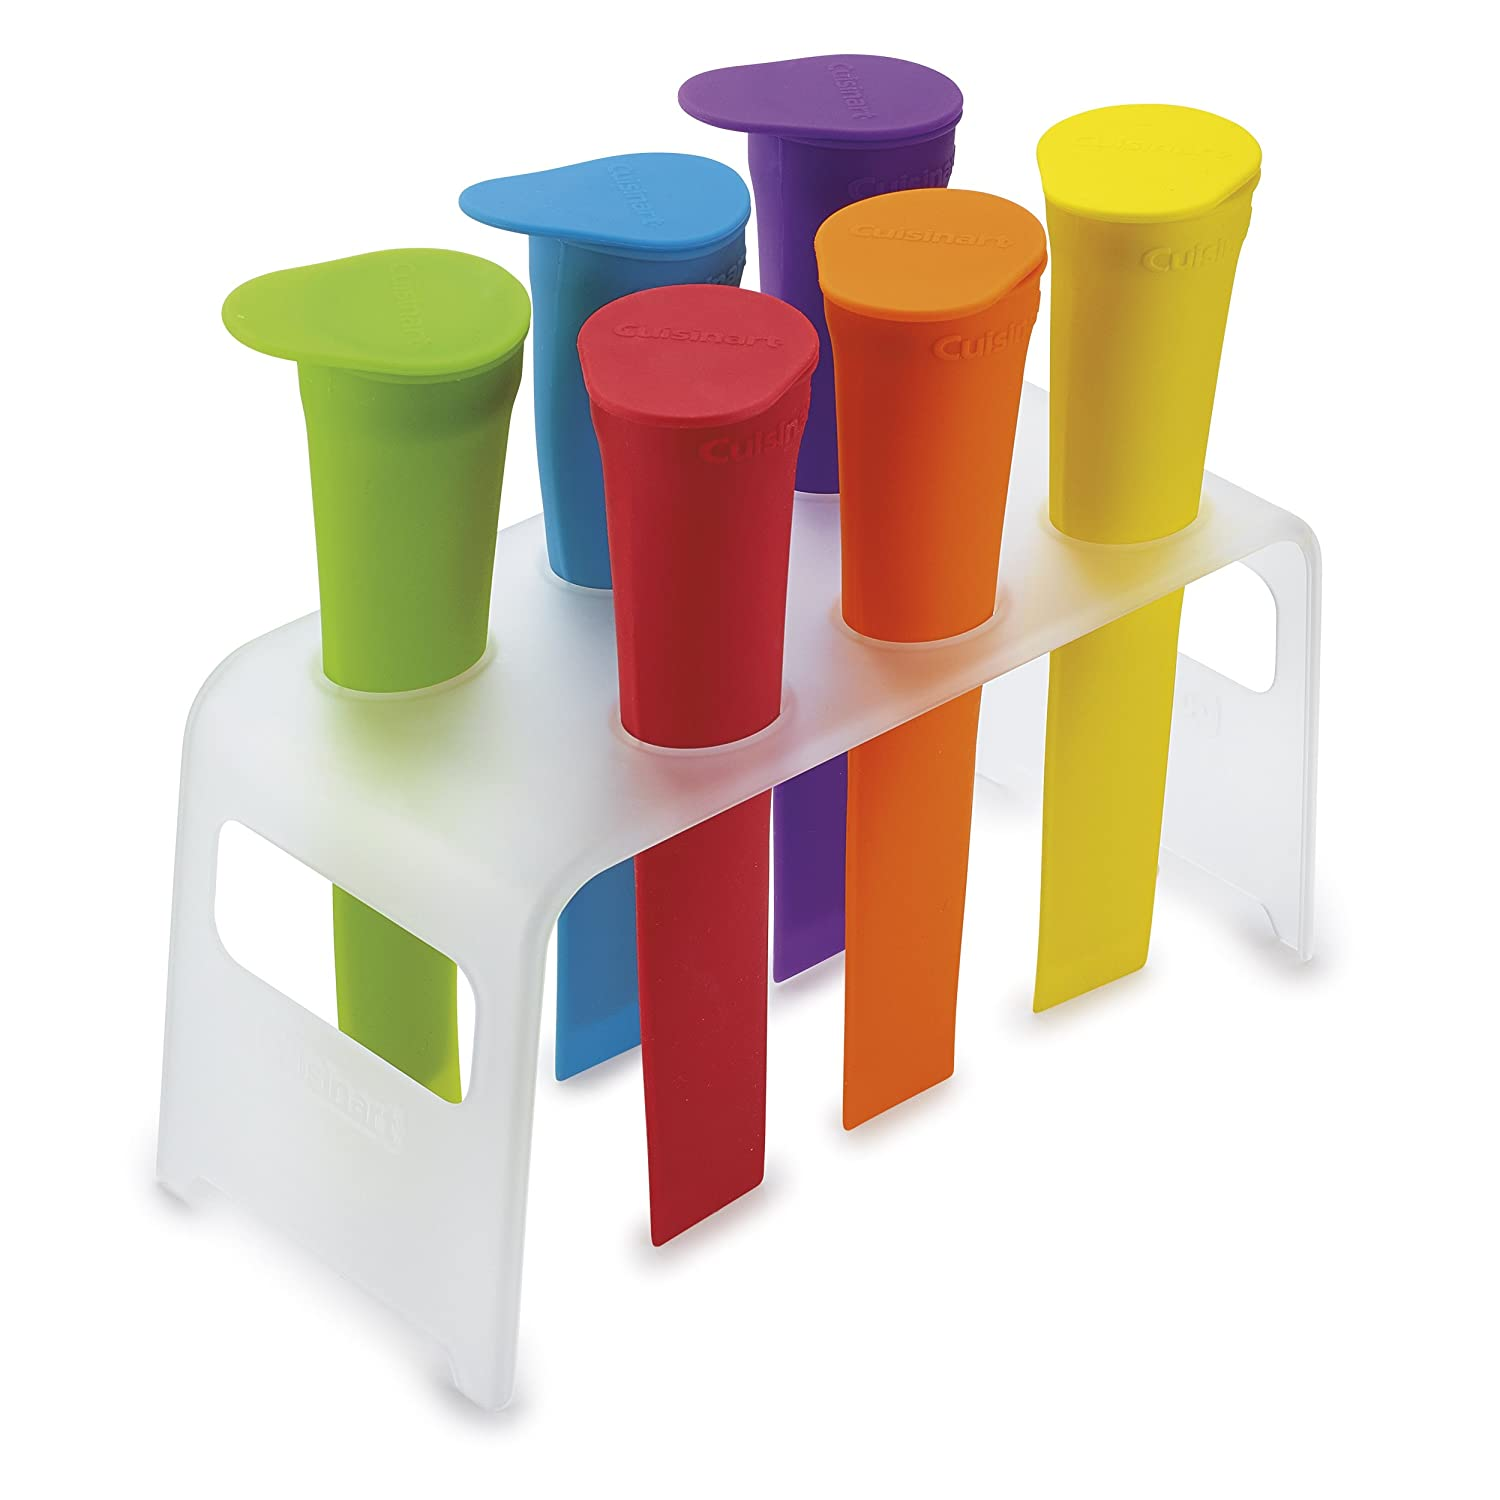 Cuisinart CTG-00-IPM Ice Pop Molds with Tray, Multicolor